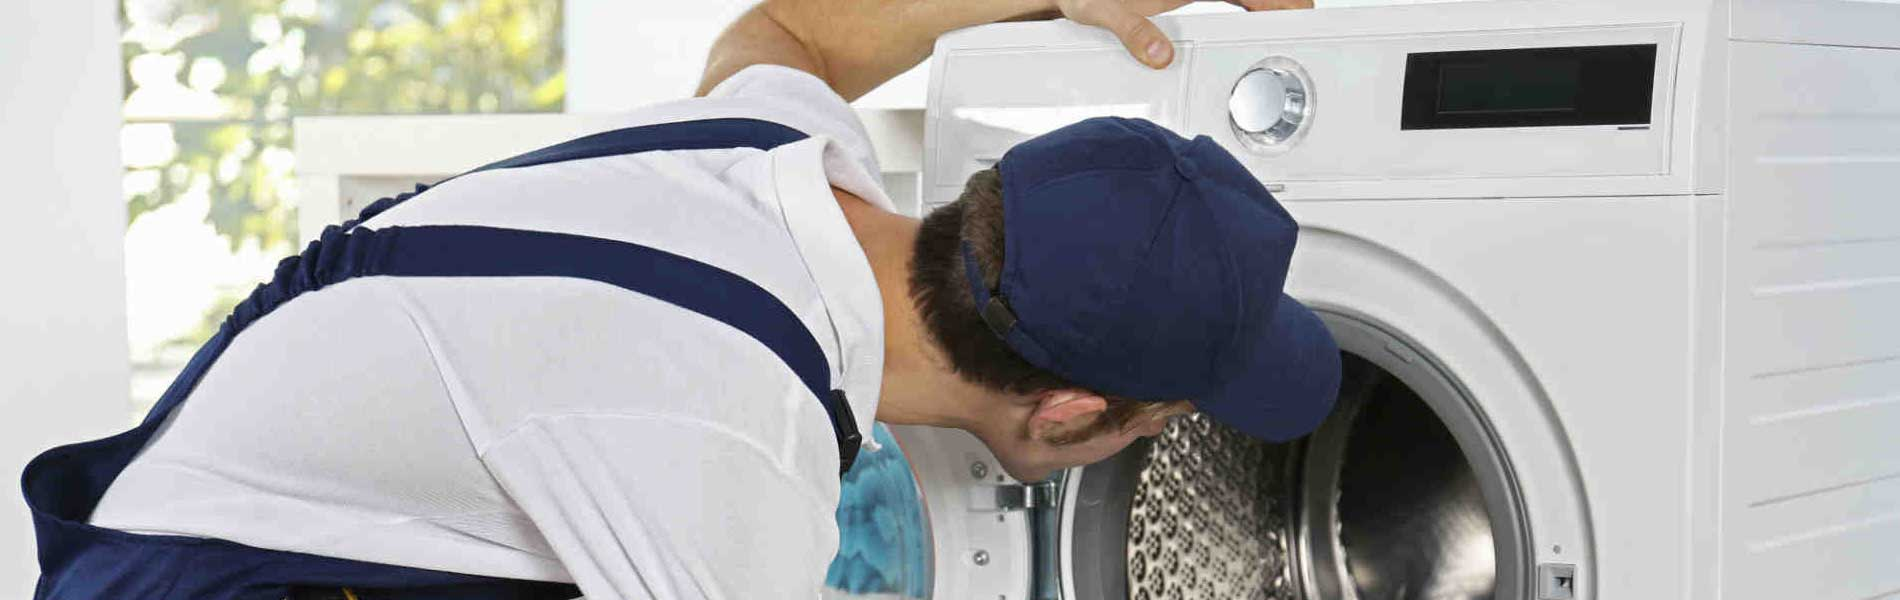 Godrej Washing Machine Service in TVK Nagar